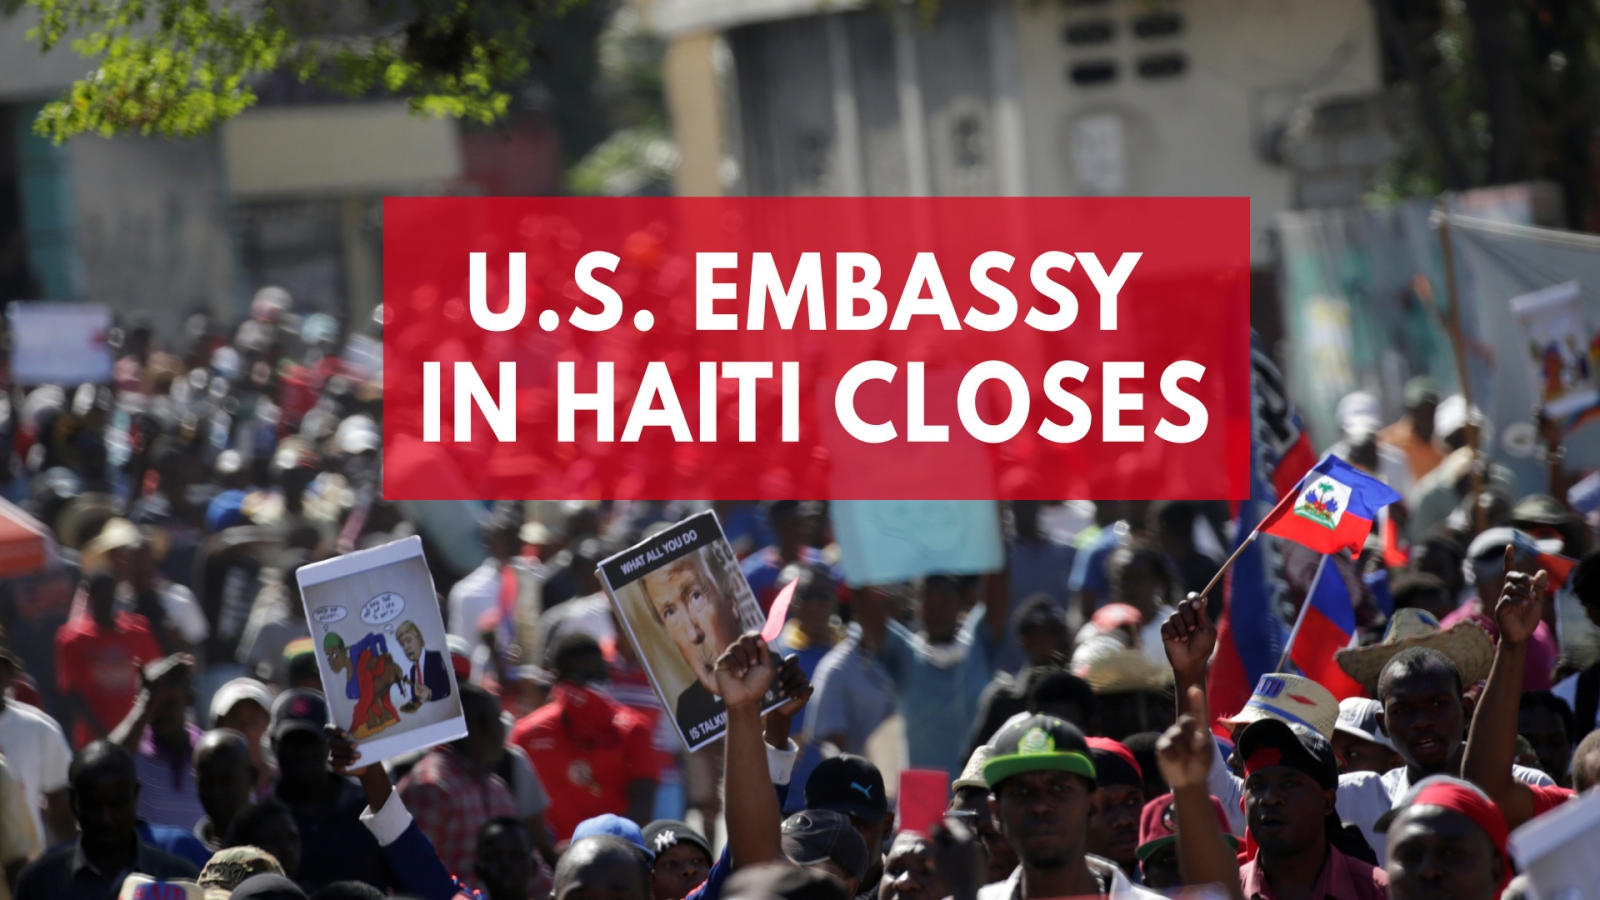 u-s-embassy-in-haiti-closes-after-hundreds-protest-trumps-sthole-country-remark